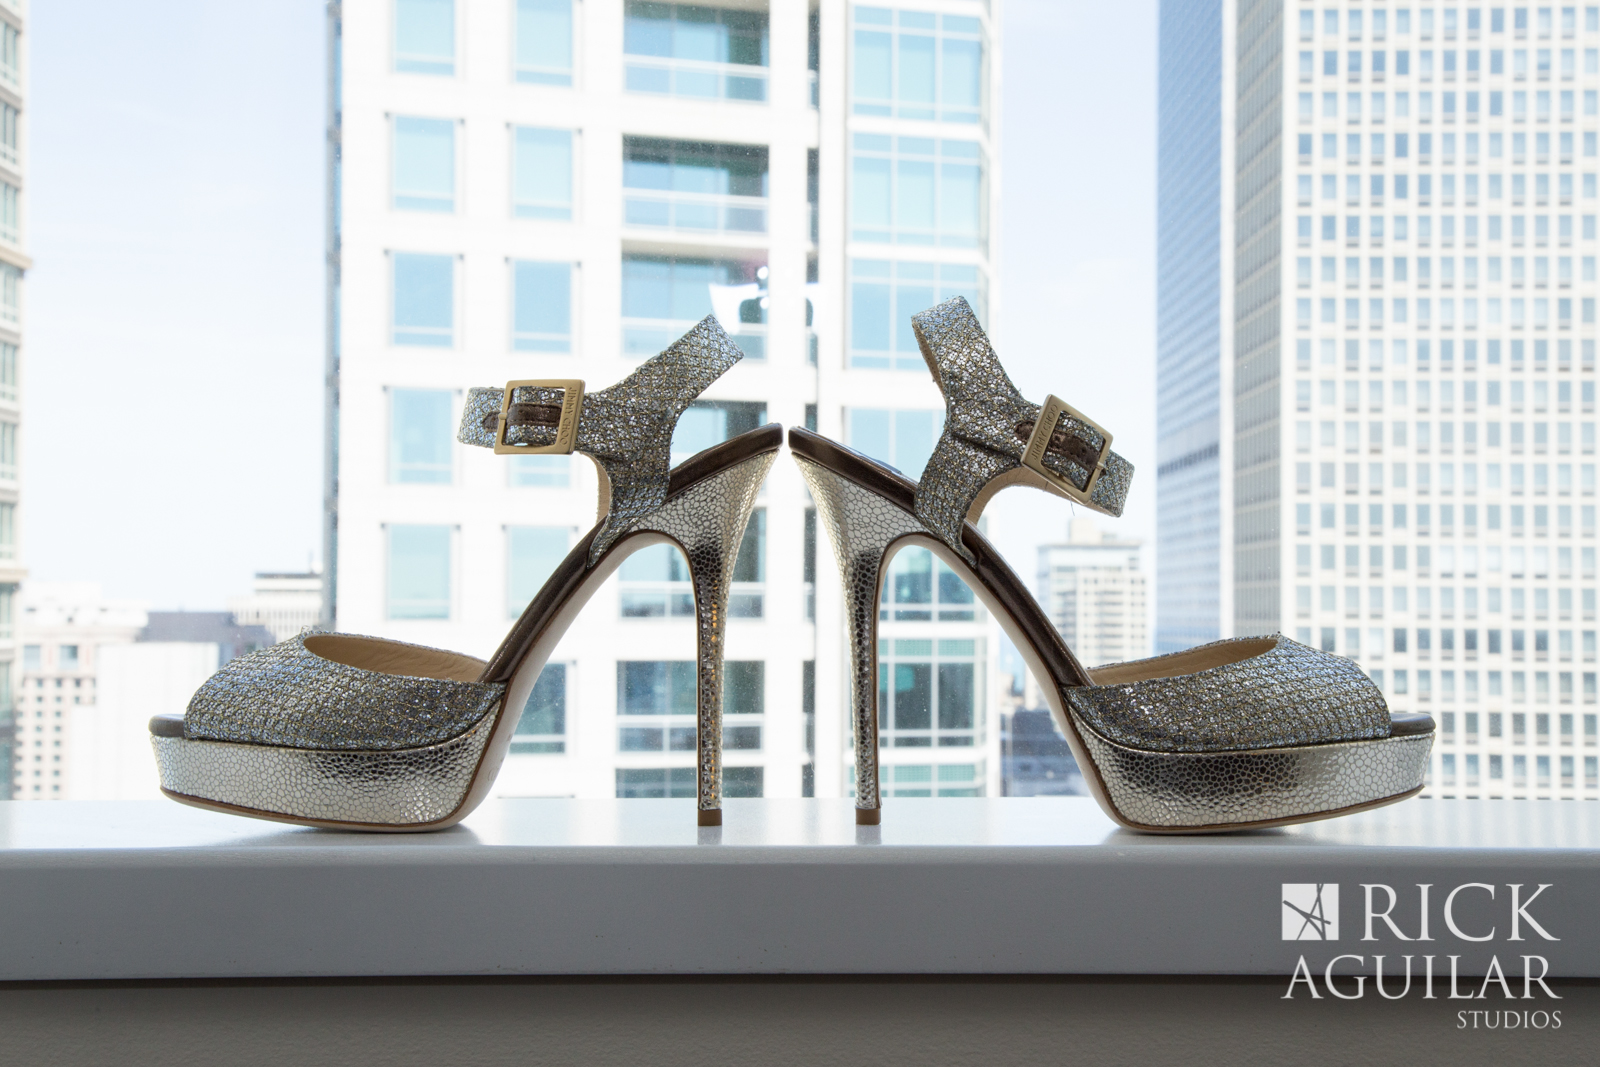 chicago-wedding-painter-ben-keys-wed-on-canvas-jimmy-choo-wedding-shoes-modern-wedding-glitter-heels